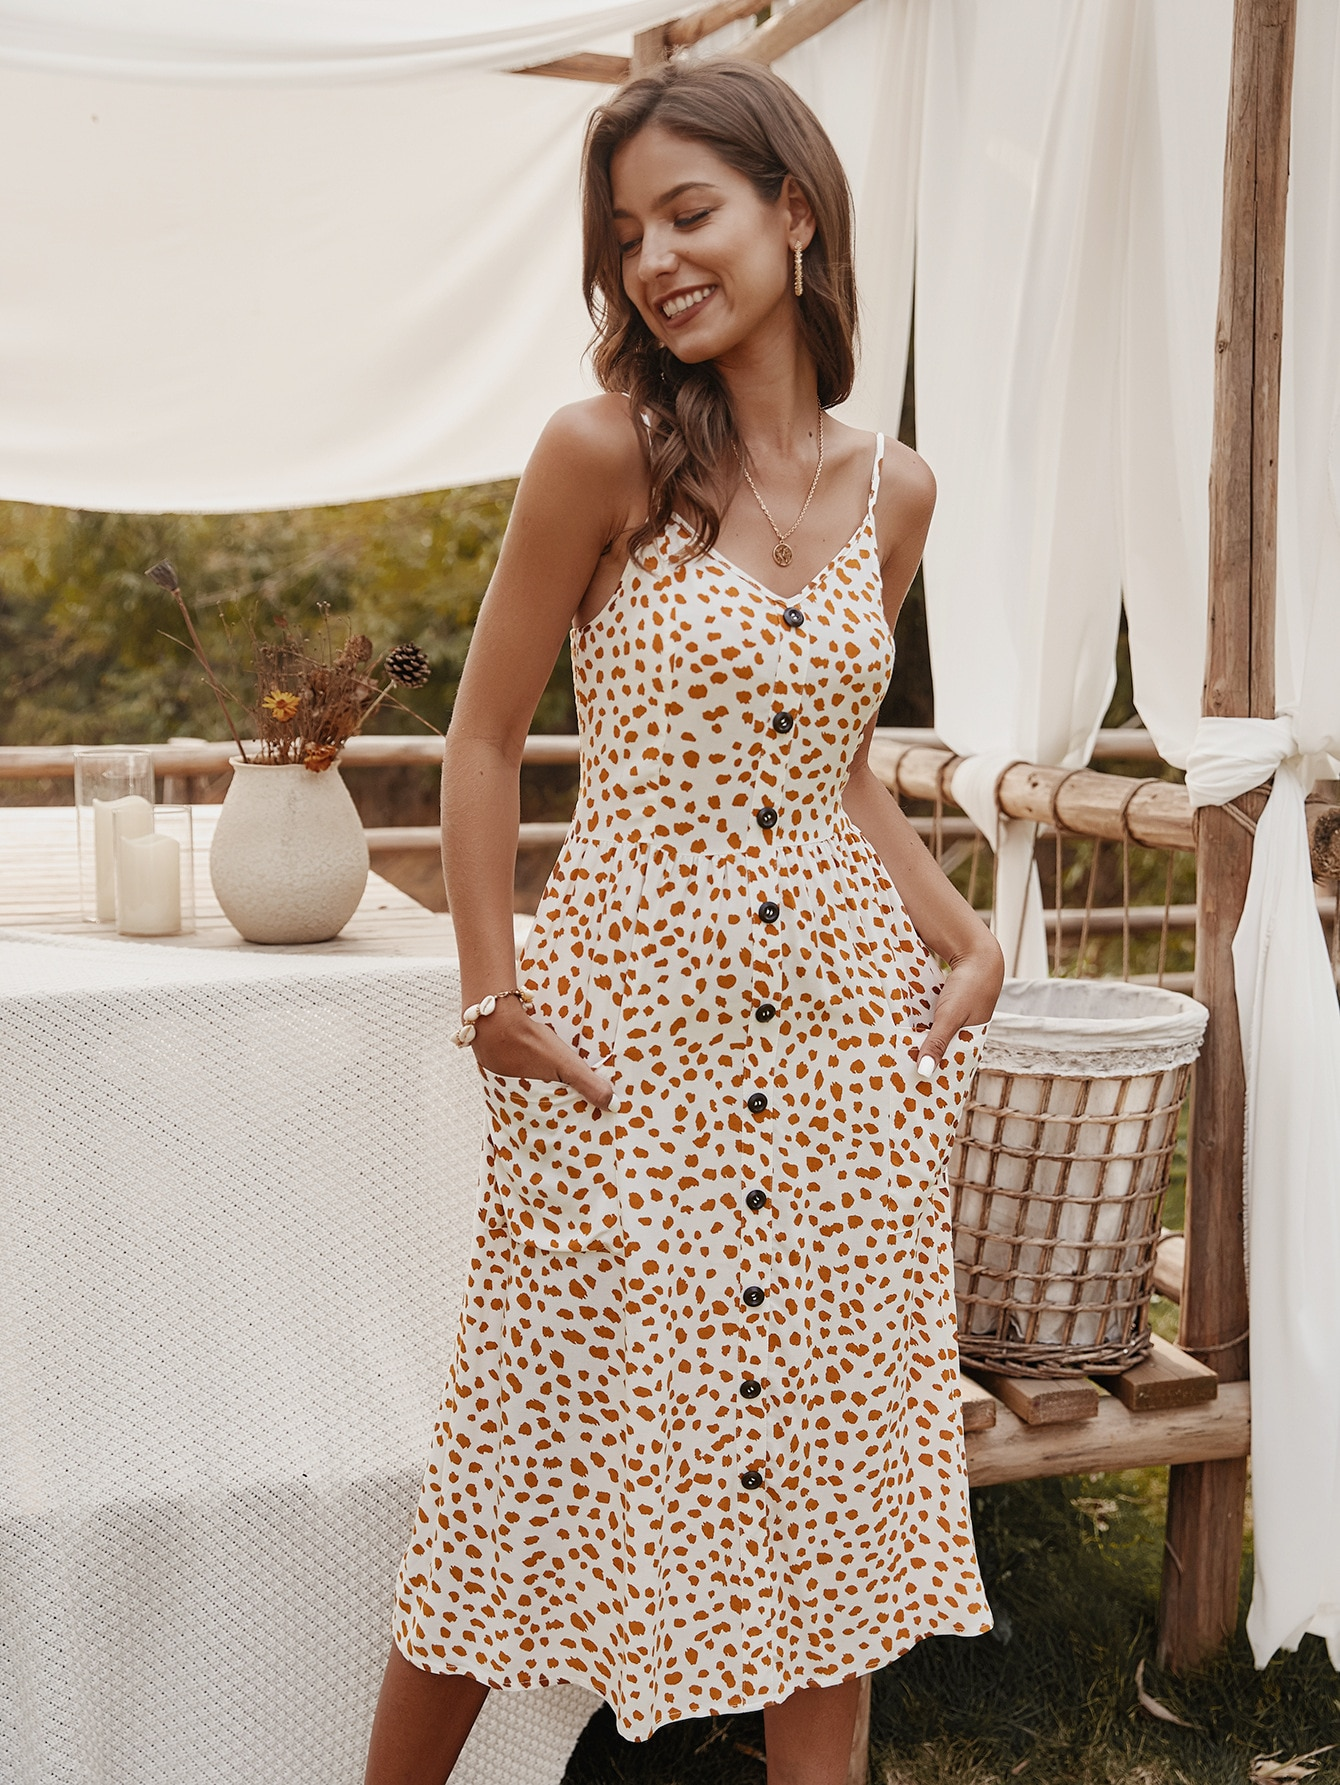 Women Dress Sling Dress Fashion cotton Dress Female Casual Dress 2020 Summer Boho Sexy Floral Dress Casual beach Dress фото